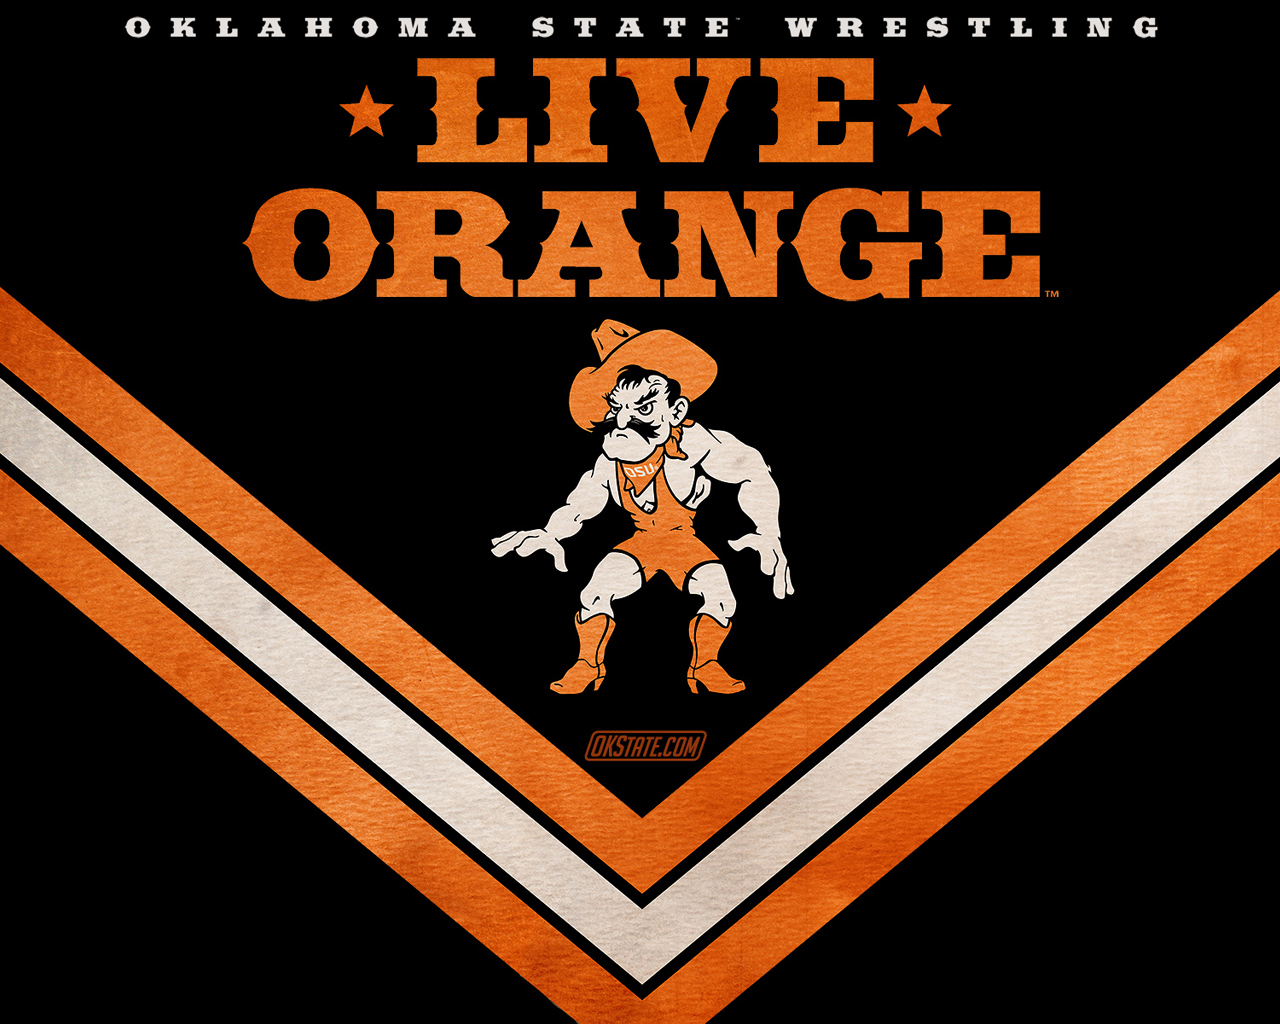 Oklahoma State Official Athletic Site   Wrestling 1280x1024